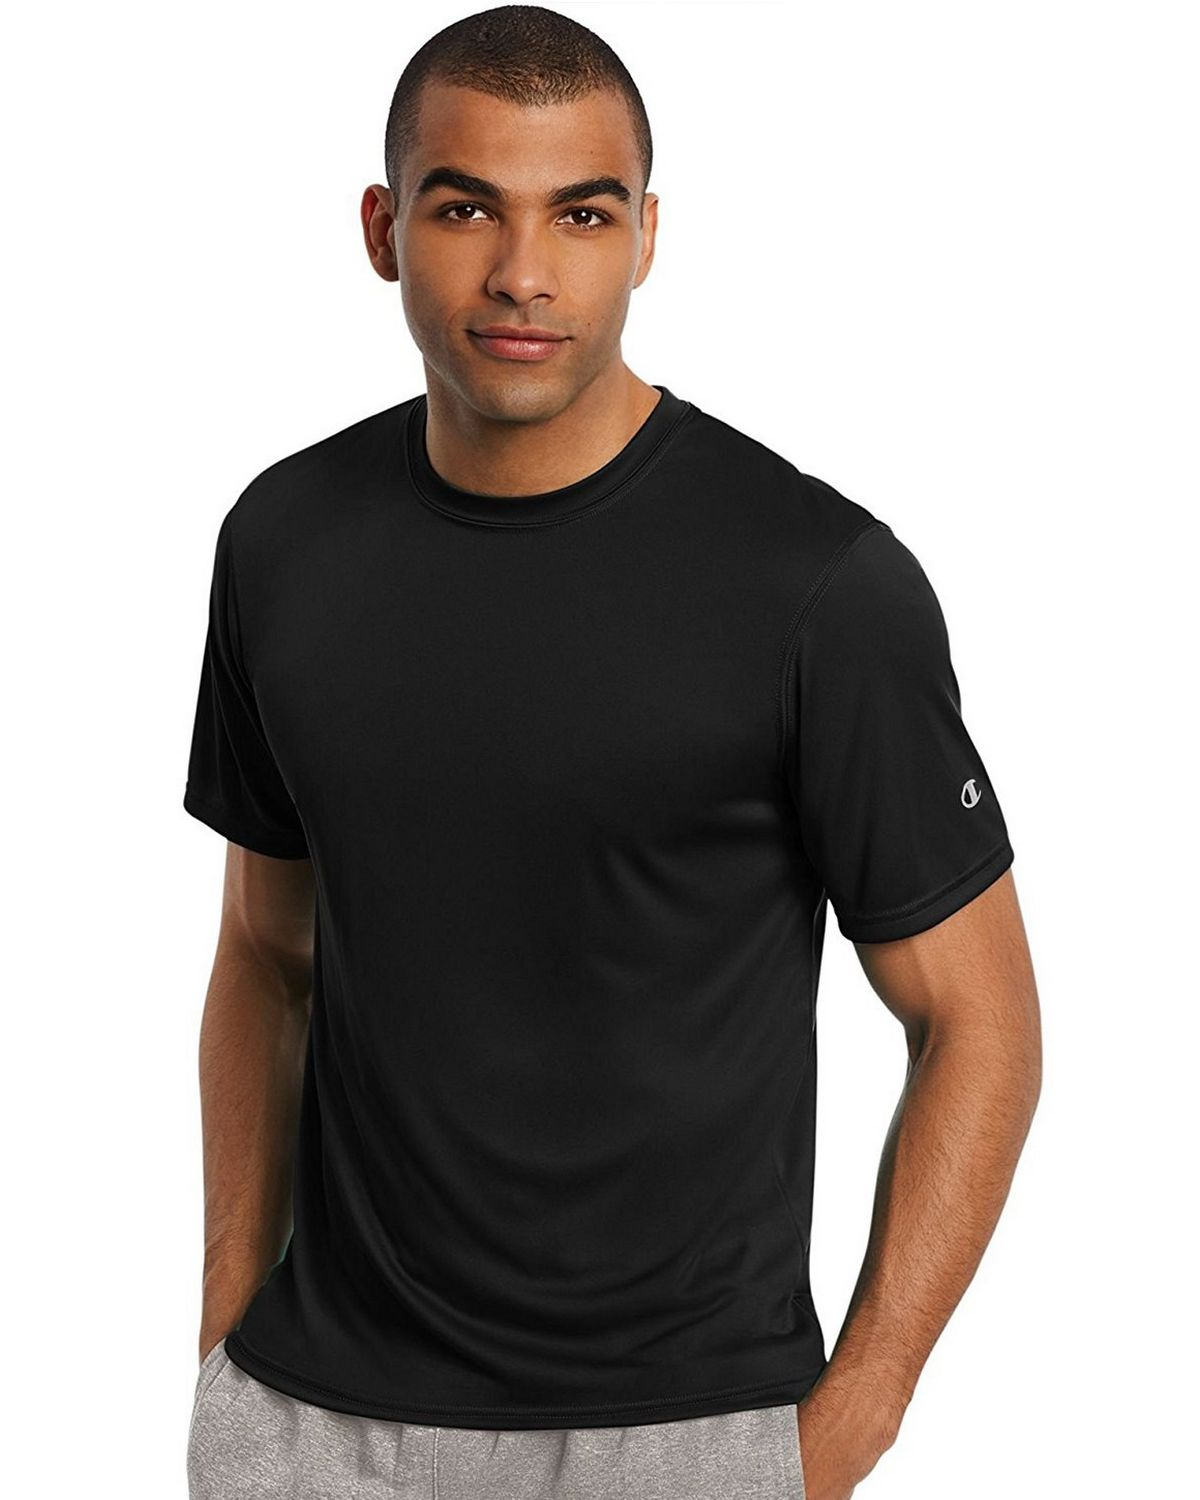 Champion T0022 Core Training Tee - Black - XL T0022